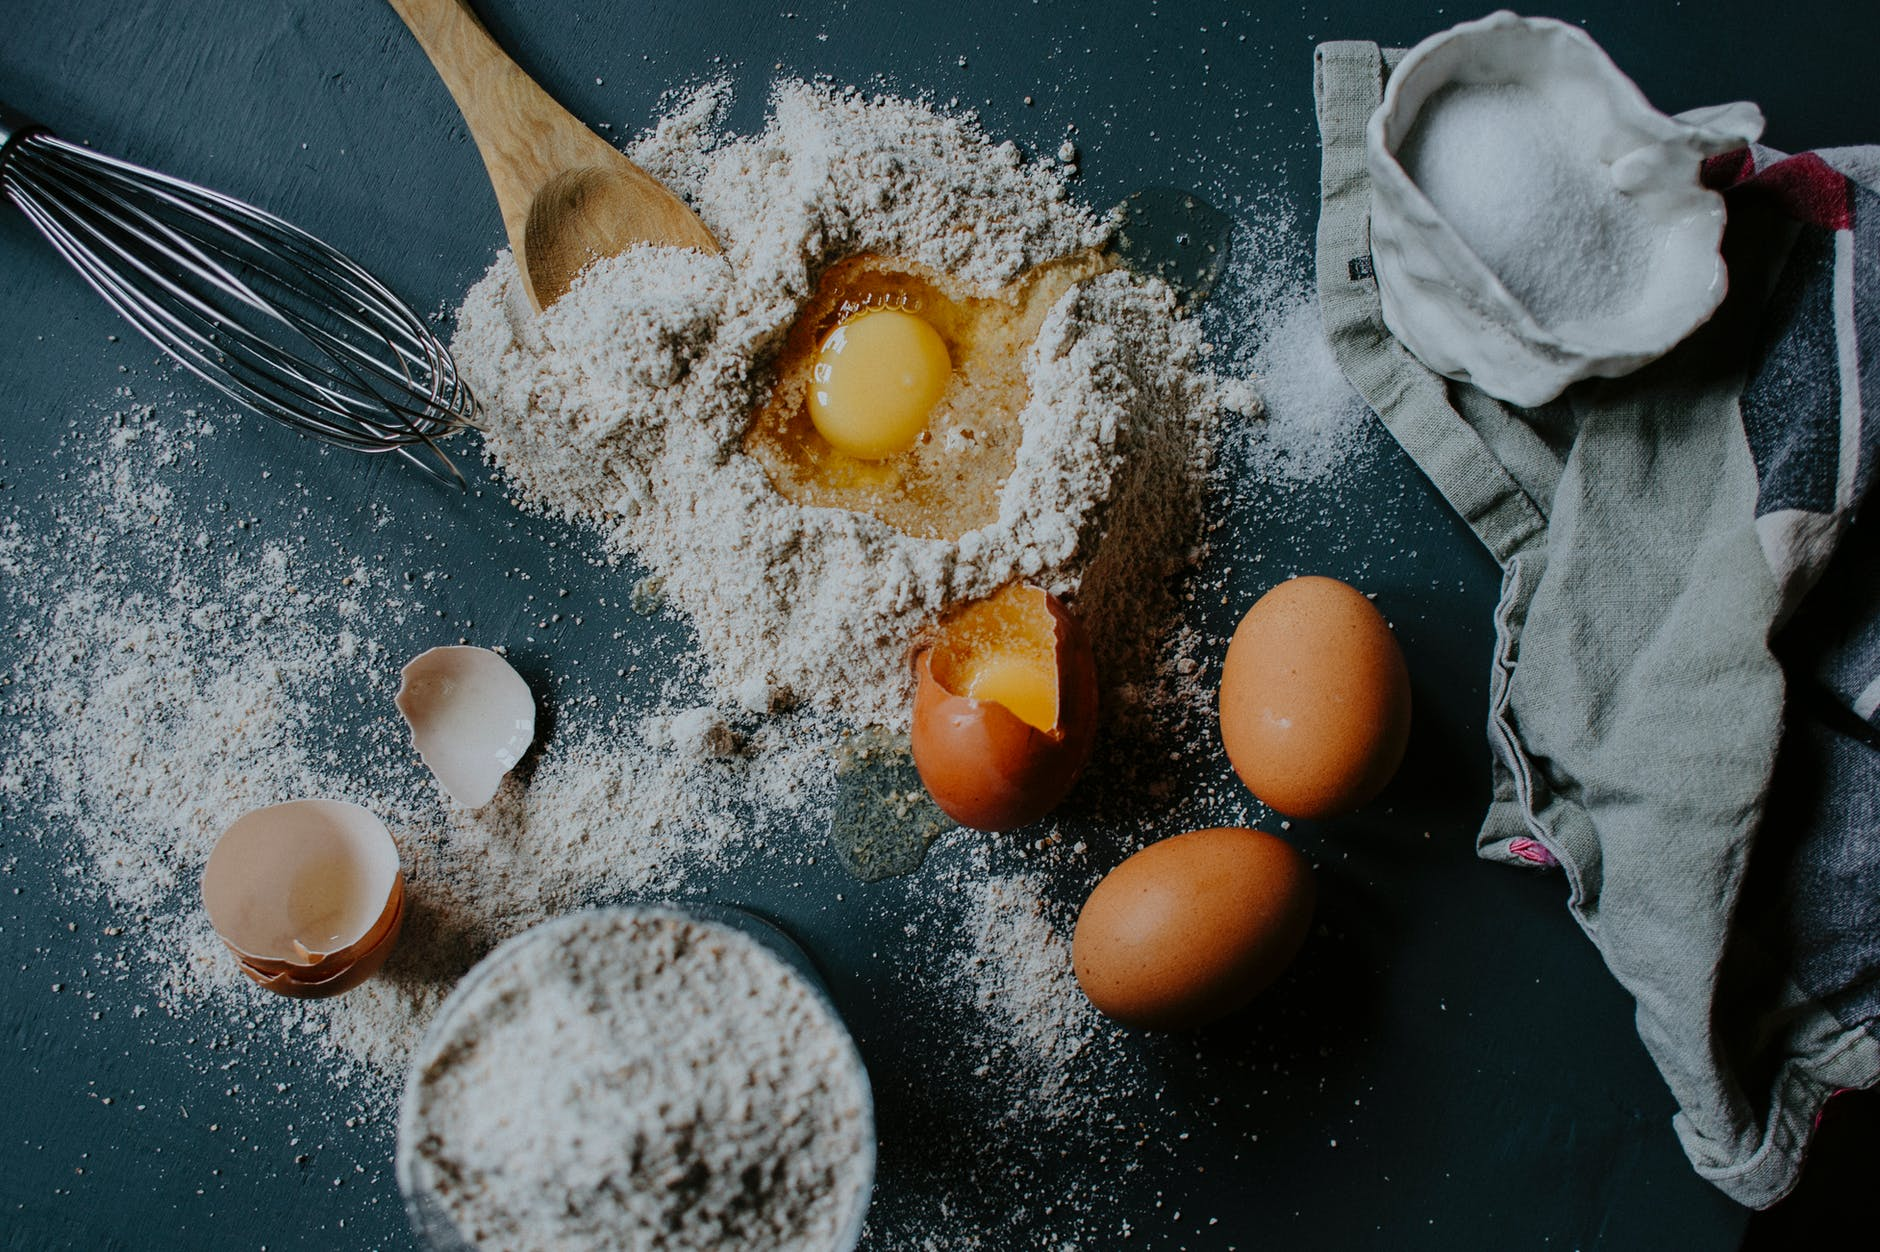 ingredients for pasta dough preparation scattered on table